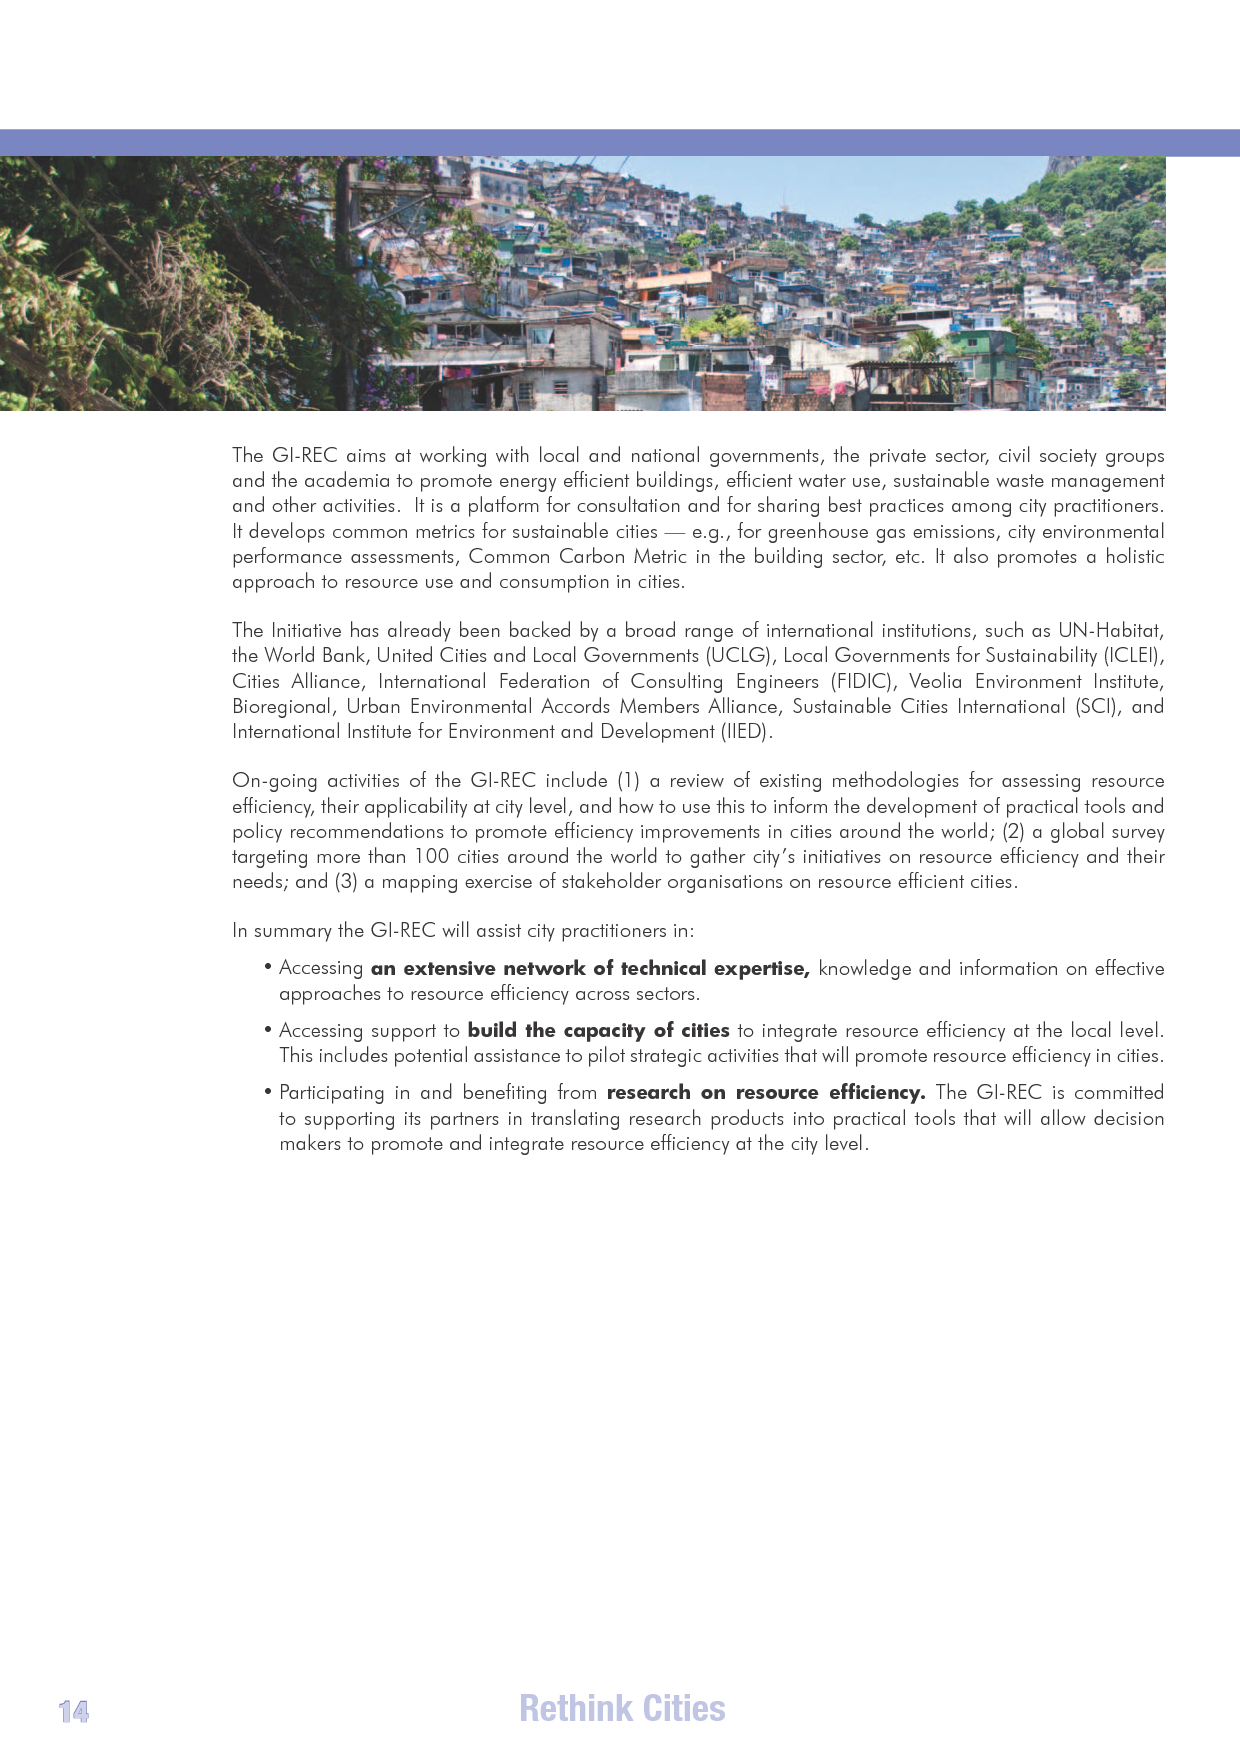 urban development paper 1 world urban forum 7 - medellin (colombia) urban equity in development - cities for life concept paper inequality: the gap is widening inequality has become a universal concern.